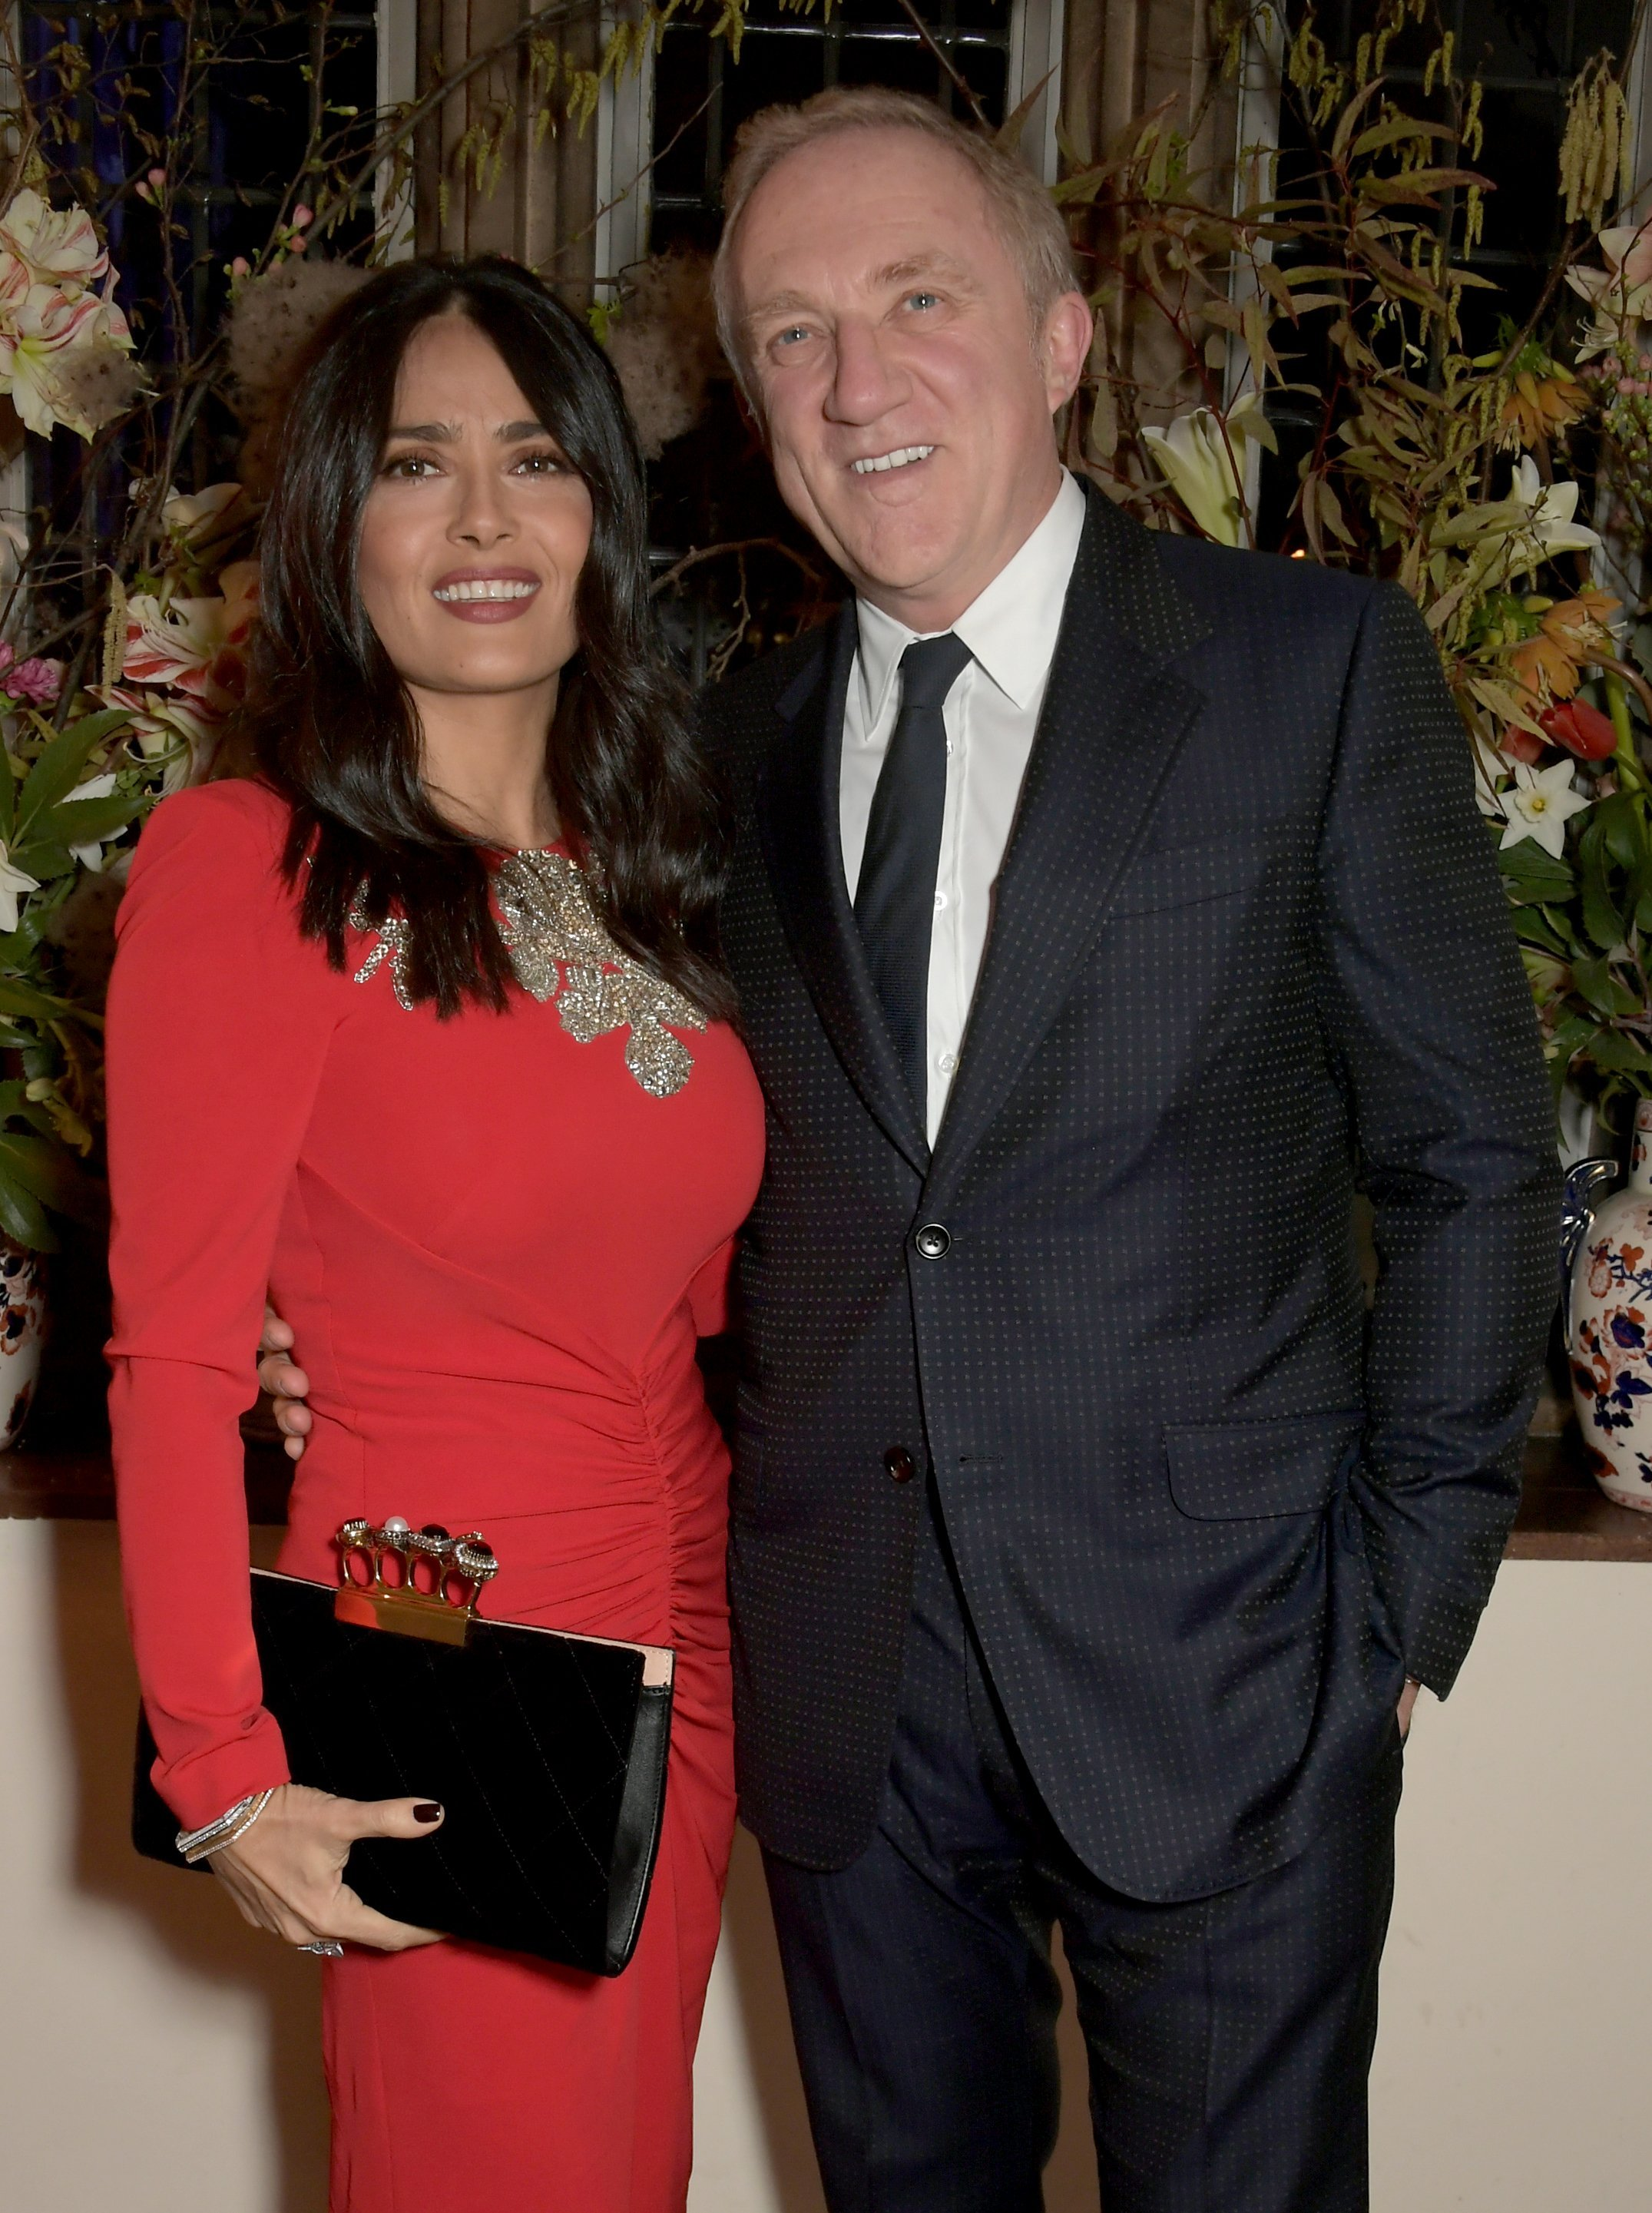 Salma Hayek and Francois-Henri Pinault at a dinner in celebration of the Alexander McQueen Old Bond Street Flagship Store | Photo: Getty Images